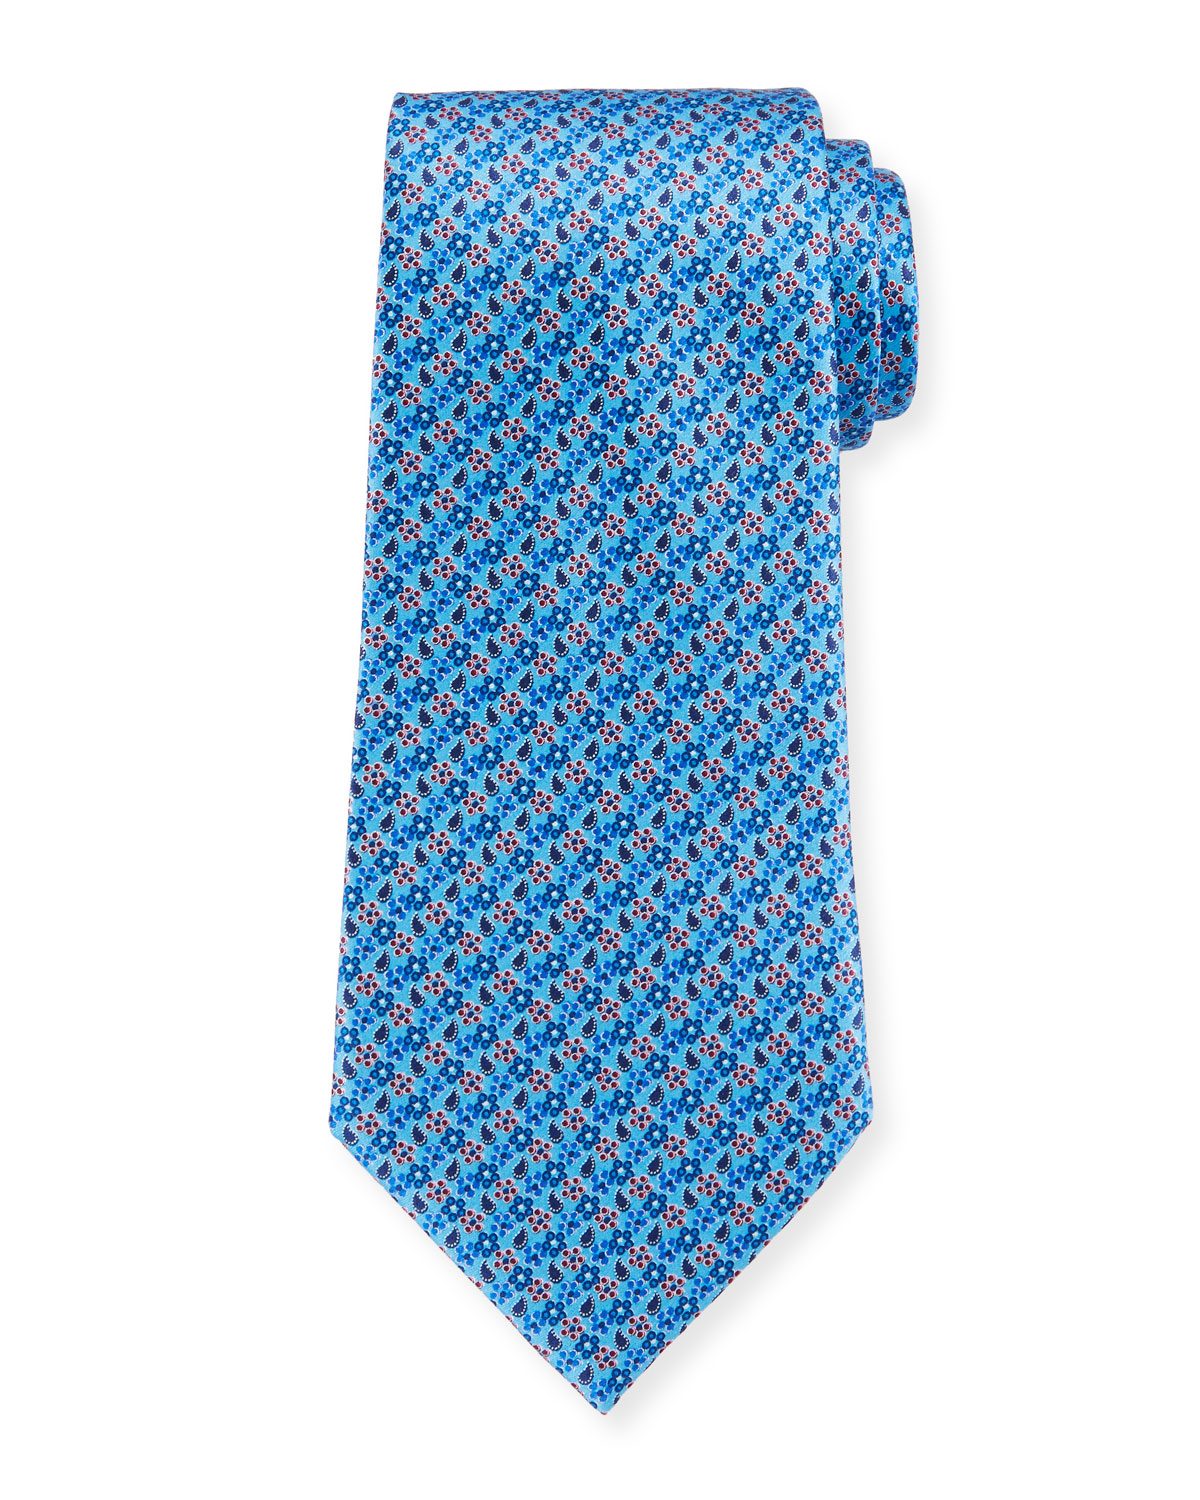 Ermenegildo Zegna Micro-Flowers Silk Tie, Light Blue